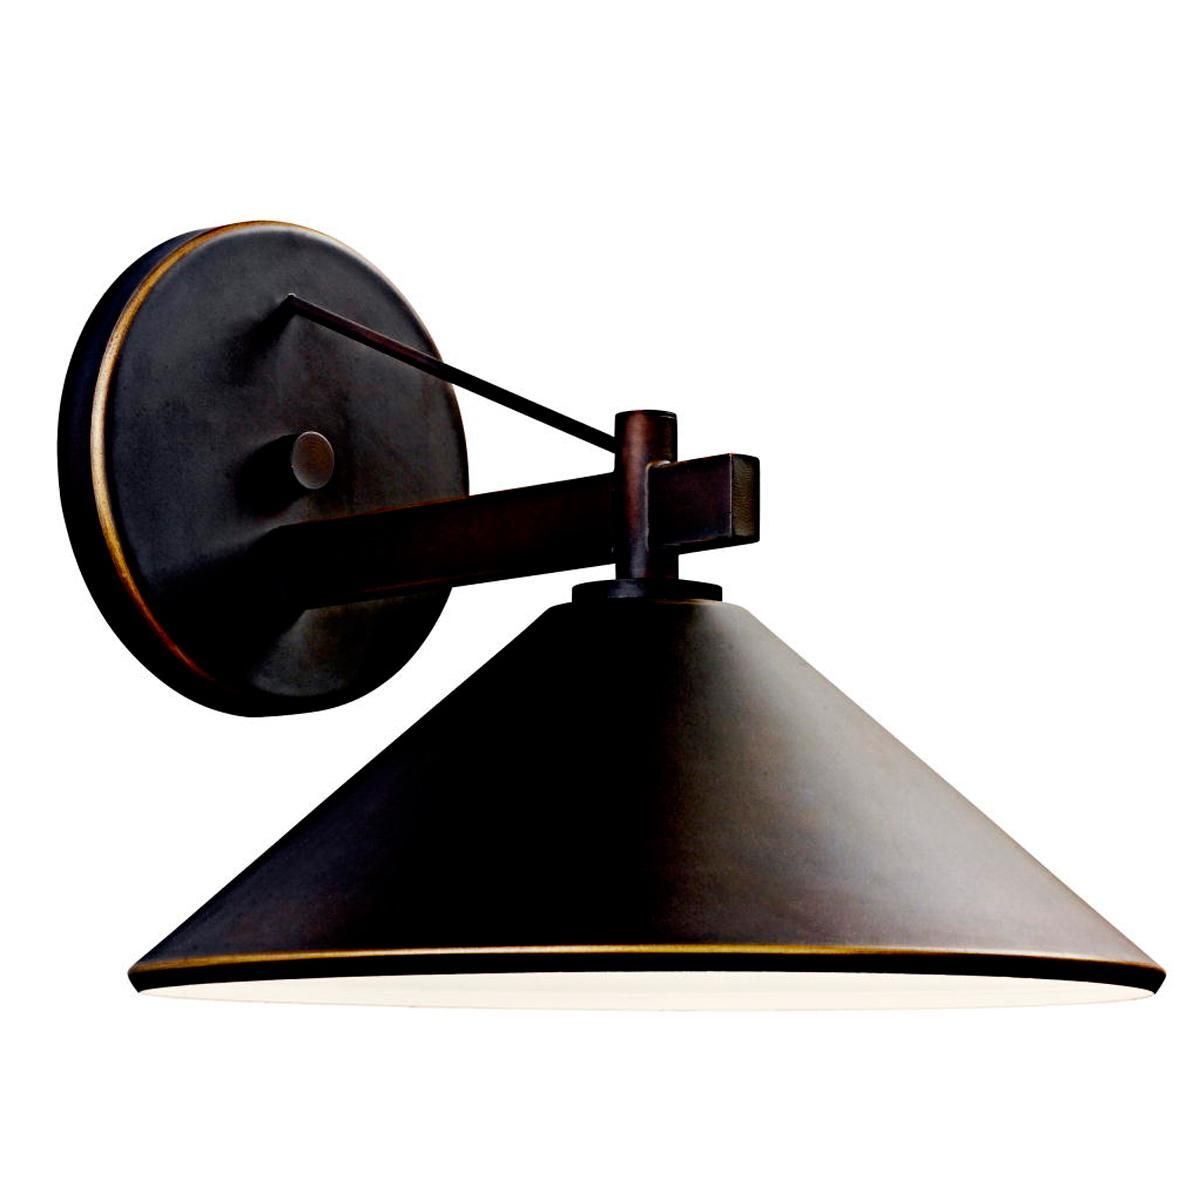 Outrigger Cone Outdoor Light Wall Lights Outdoor Walls Outdoor Wall Lantern